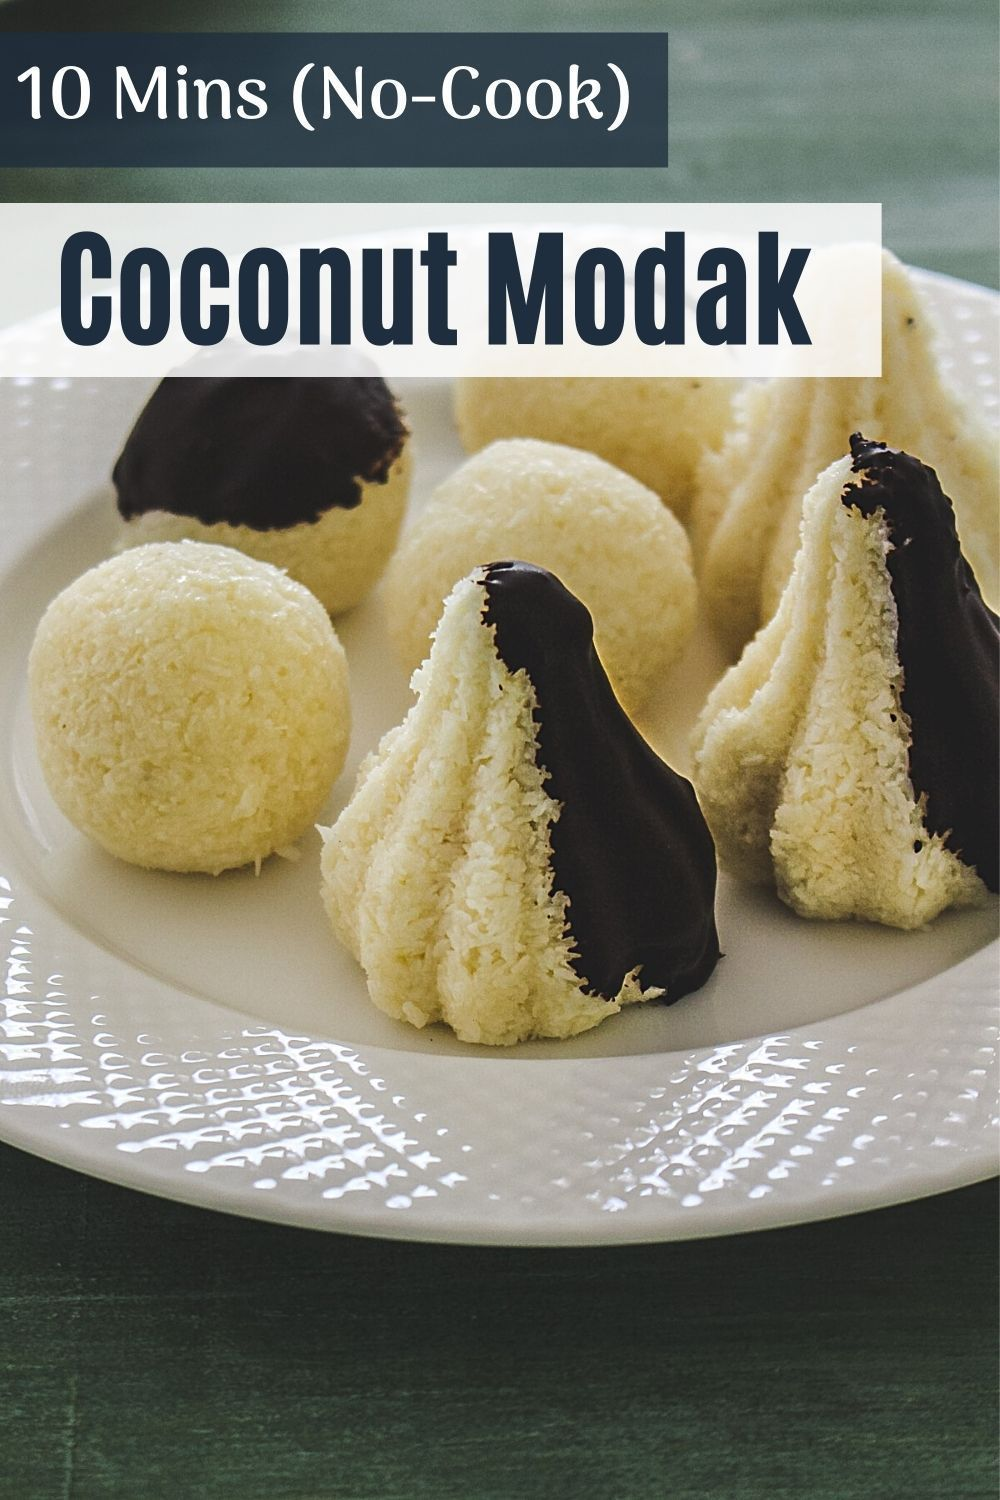 Coconut Modak Chocolate Covered Spice Up The Curry Recipe In 2020 Modak Recipe Recipes Chocolate Recipes